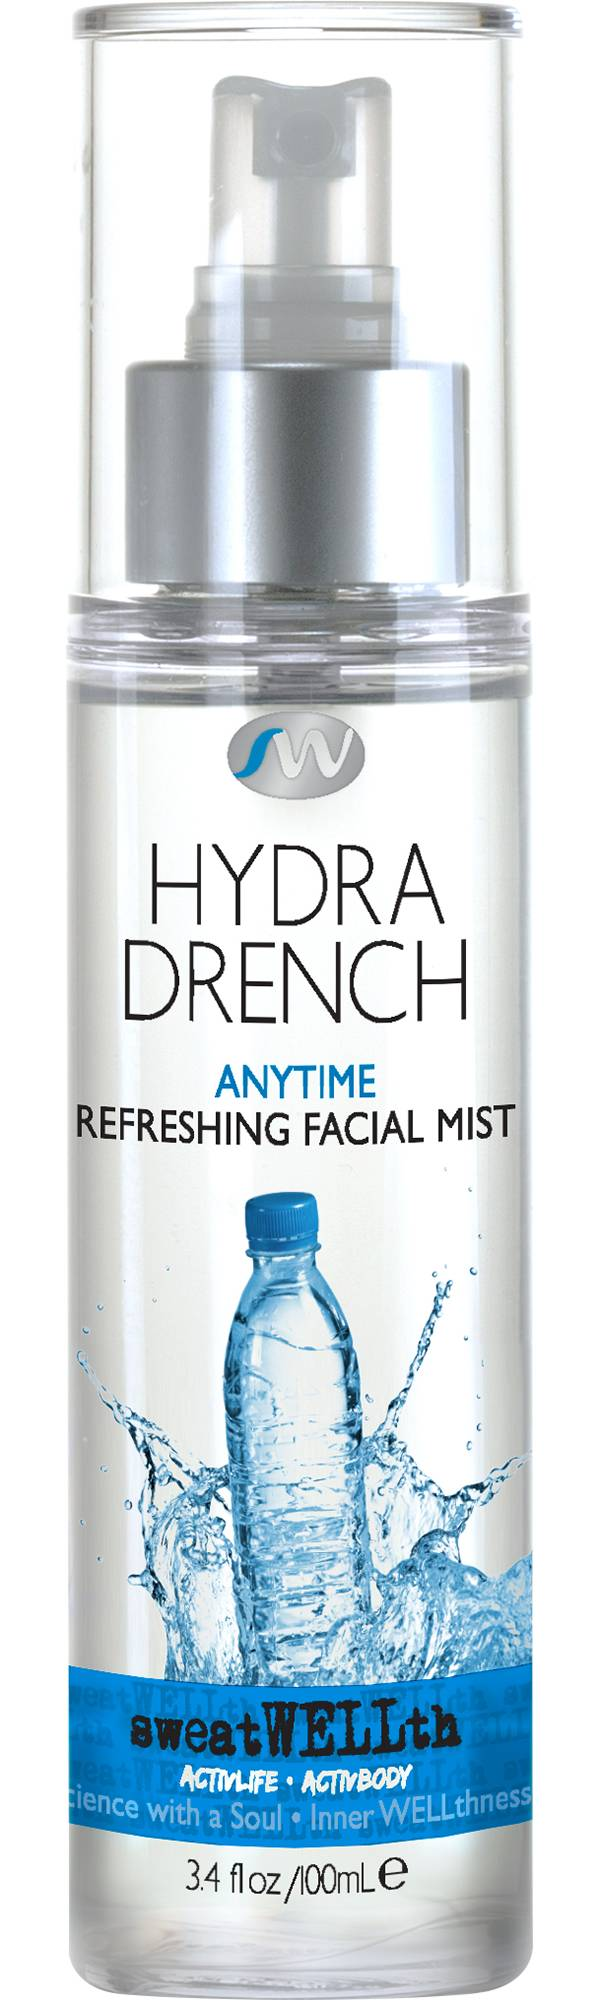 sweatWELLth Hydra Drench Refreshing Facial Mist product image